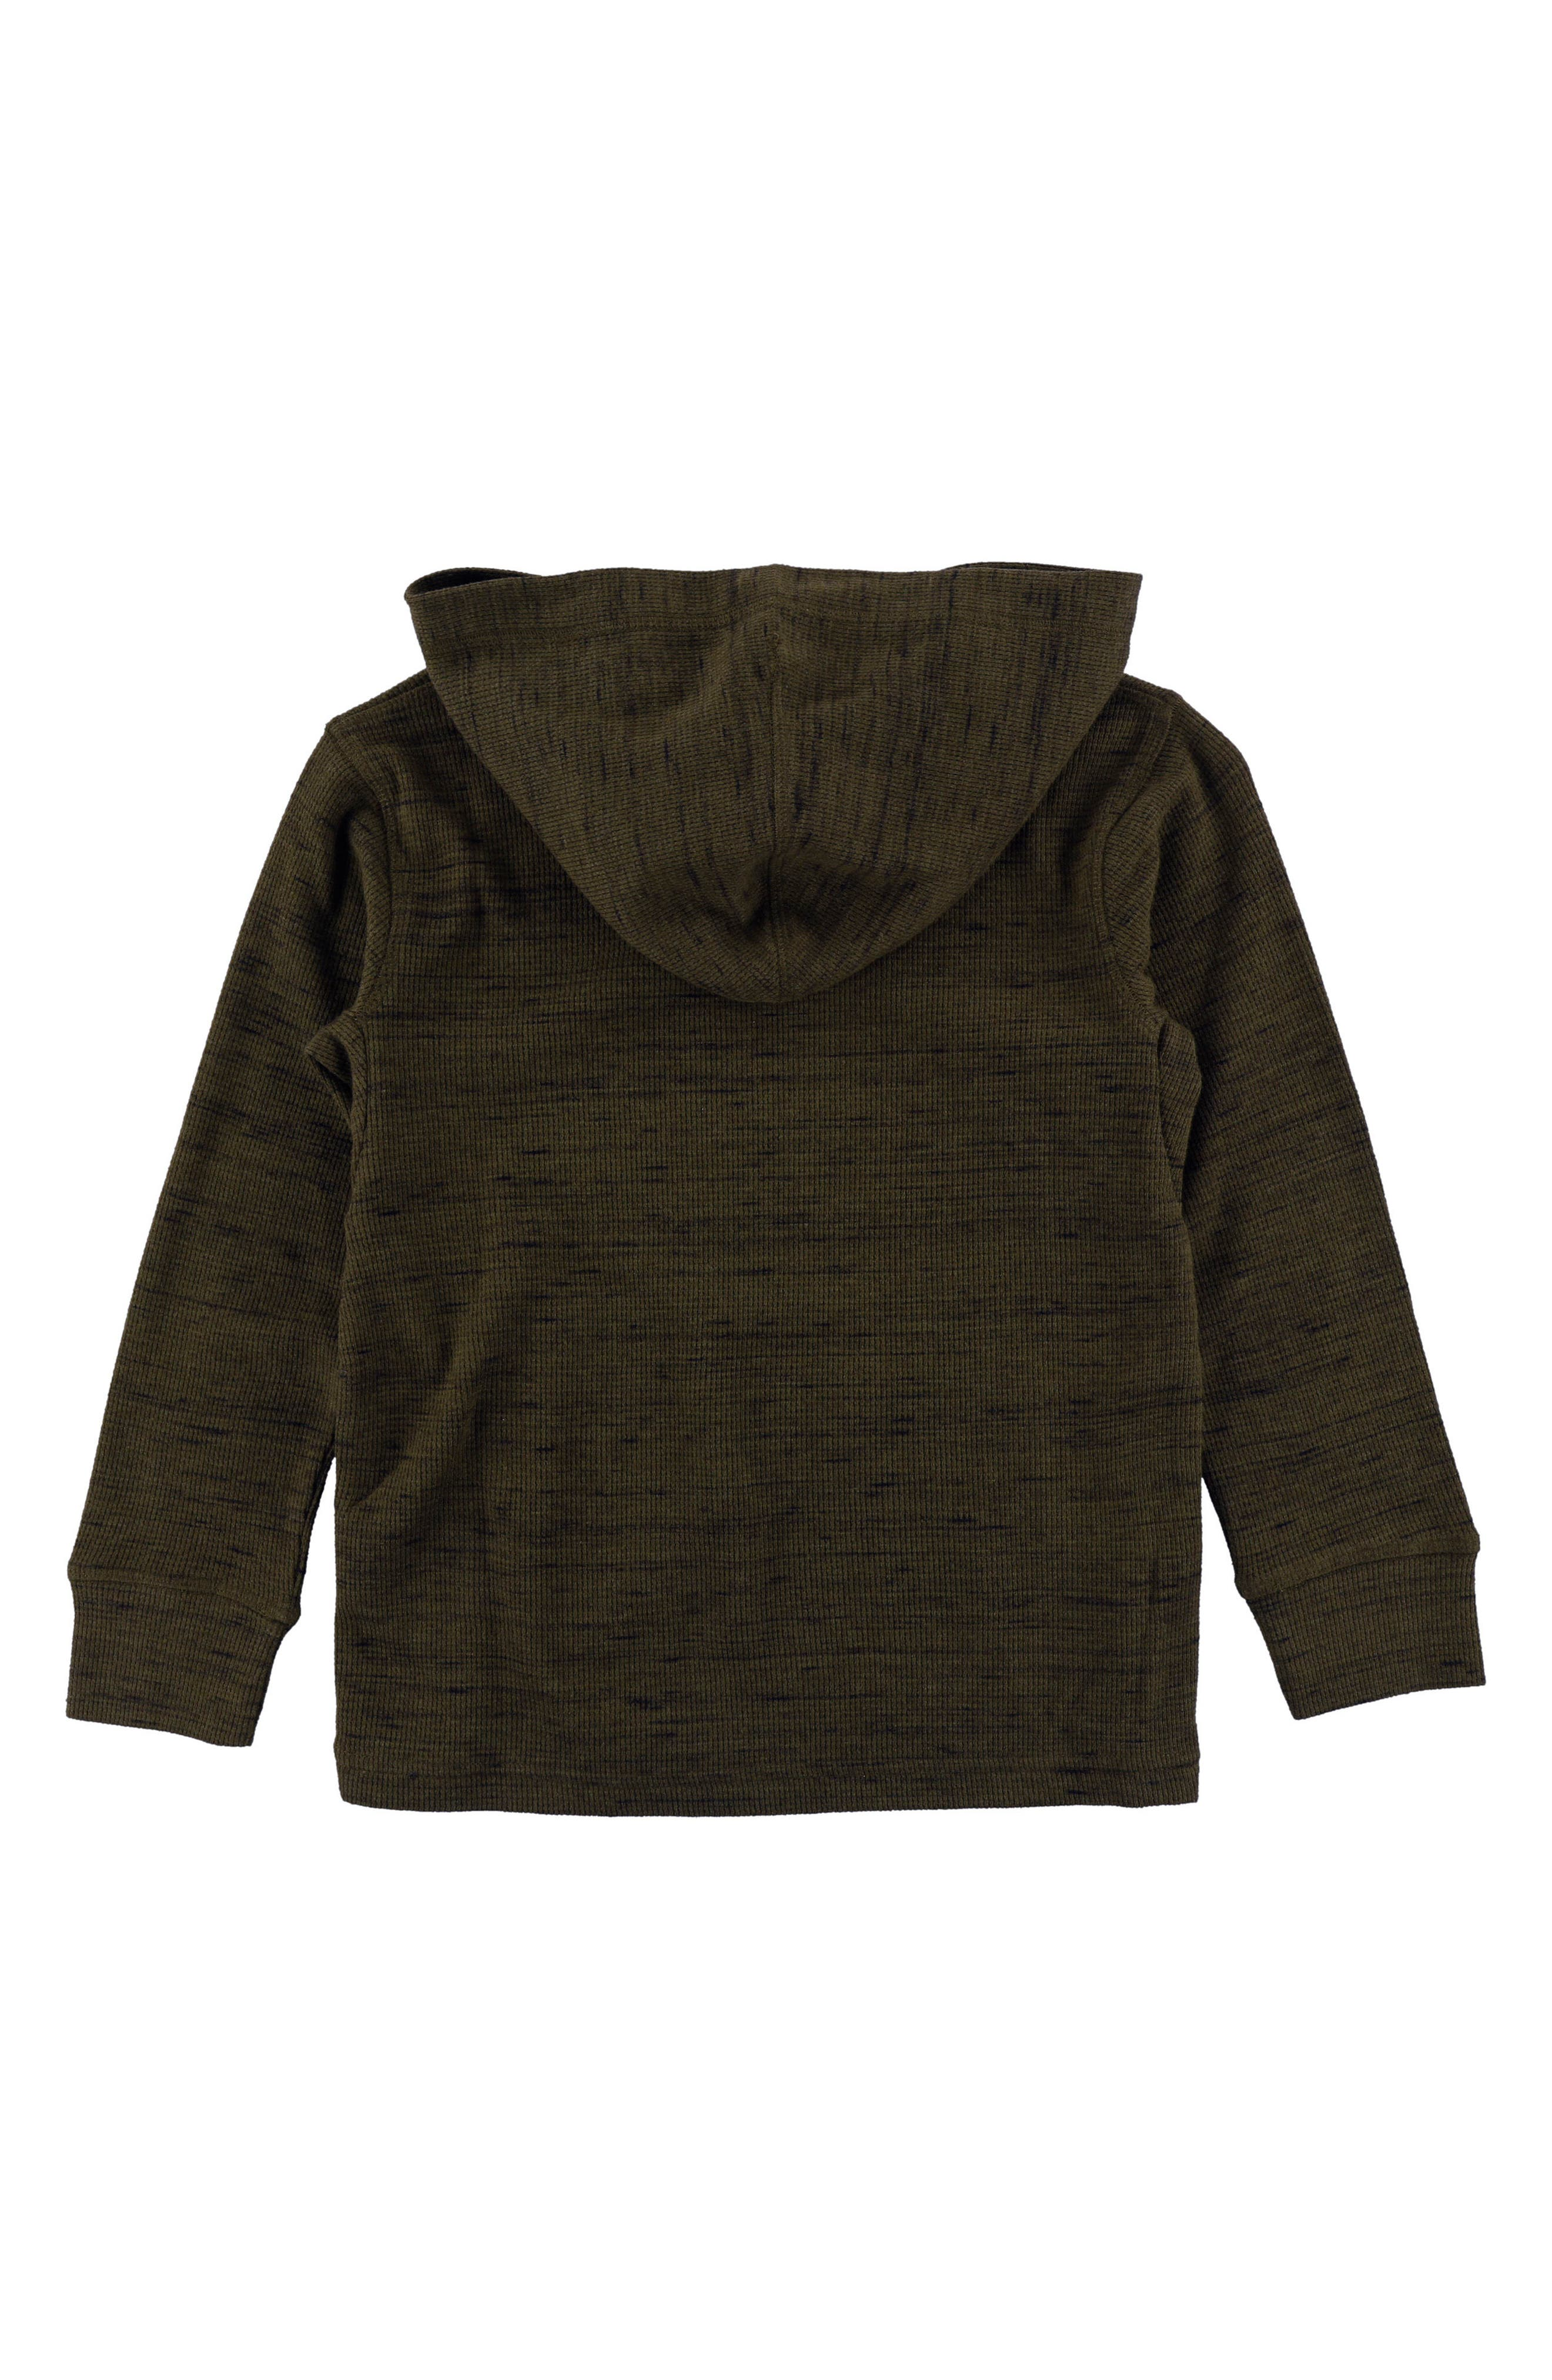 Boldin Thermal Pullover Hoodie,                             Main thumbnail 1, color,